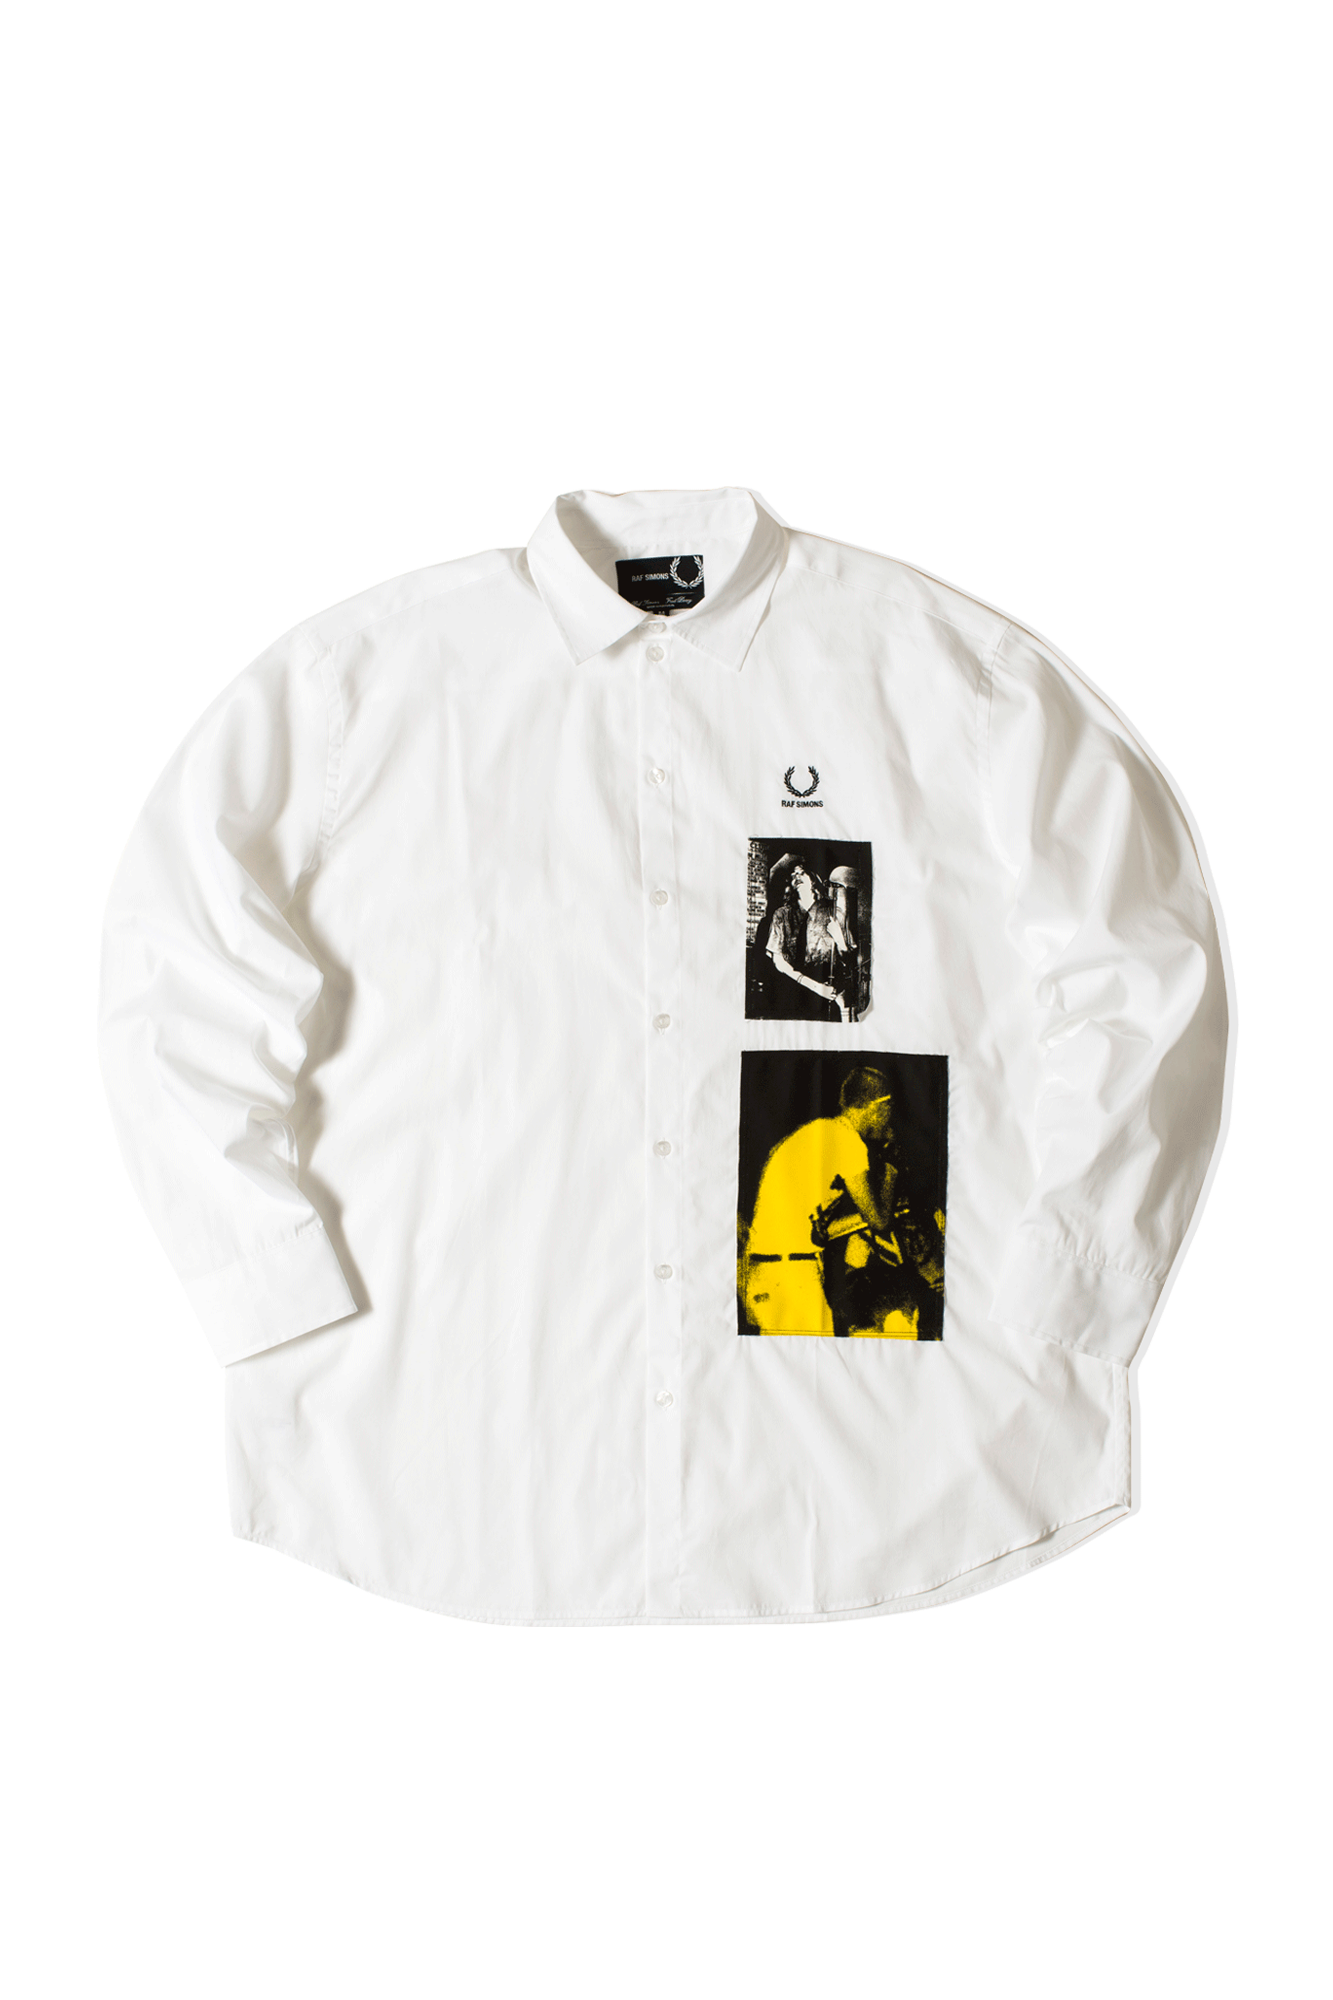 Raf Simons Patched Oversized Shirt White